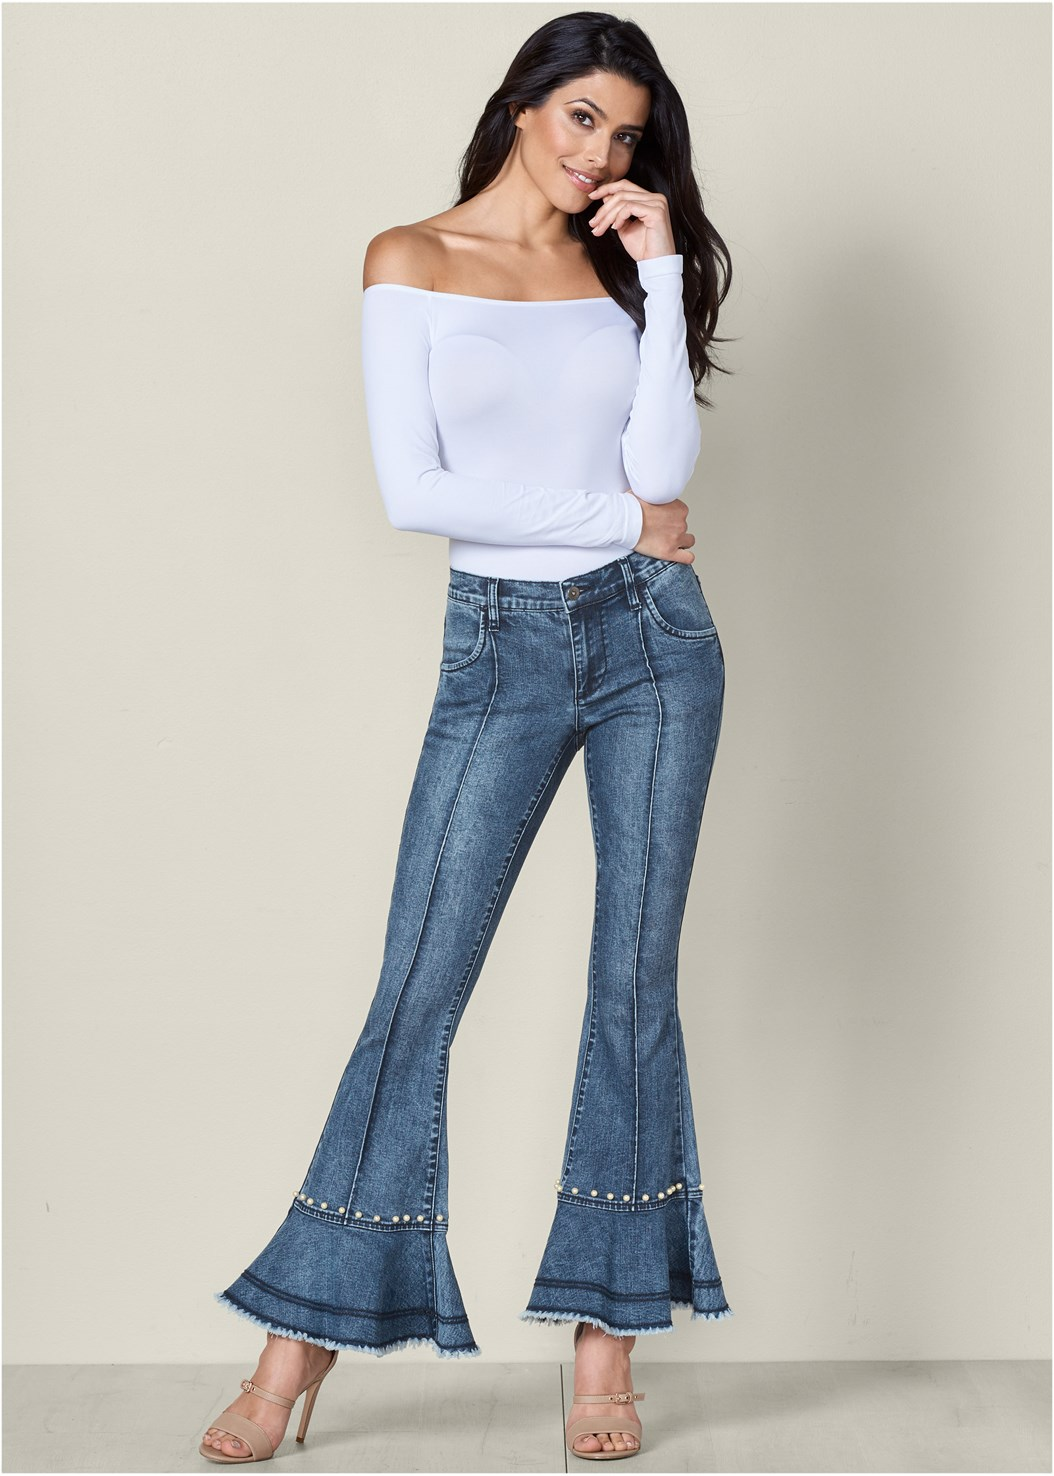 Pearl Detail Jeans,Off The Shoulder Top,Buckle Detail Strappy Heels